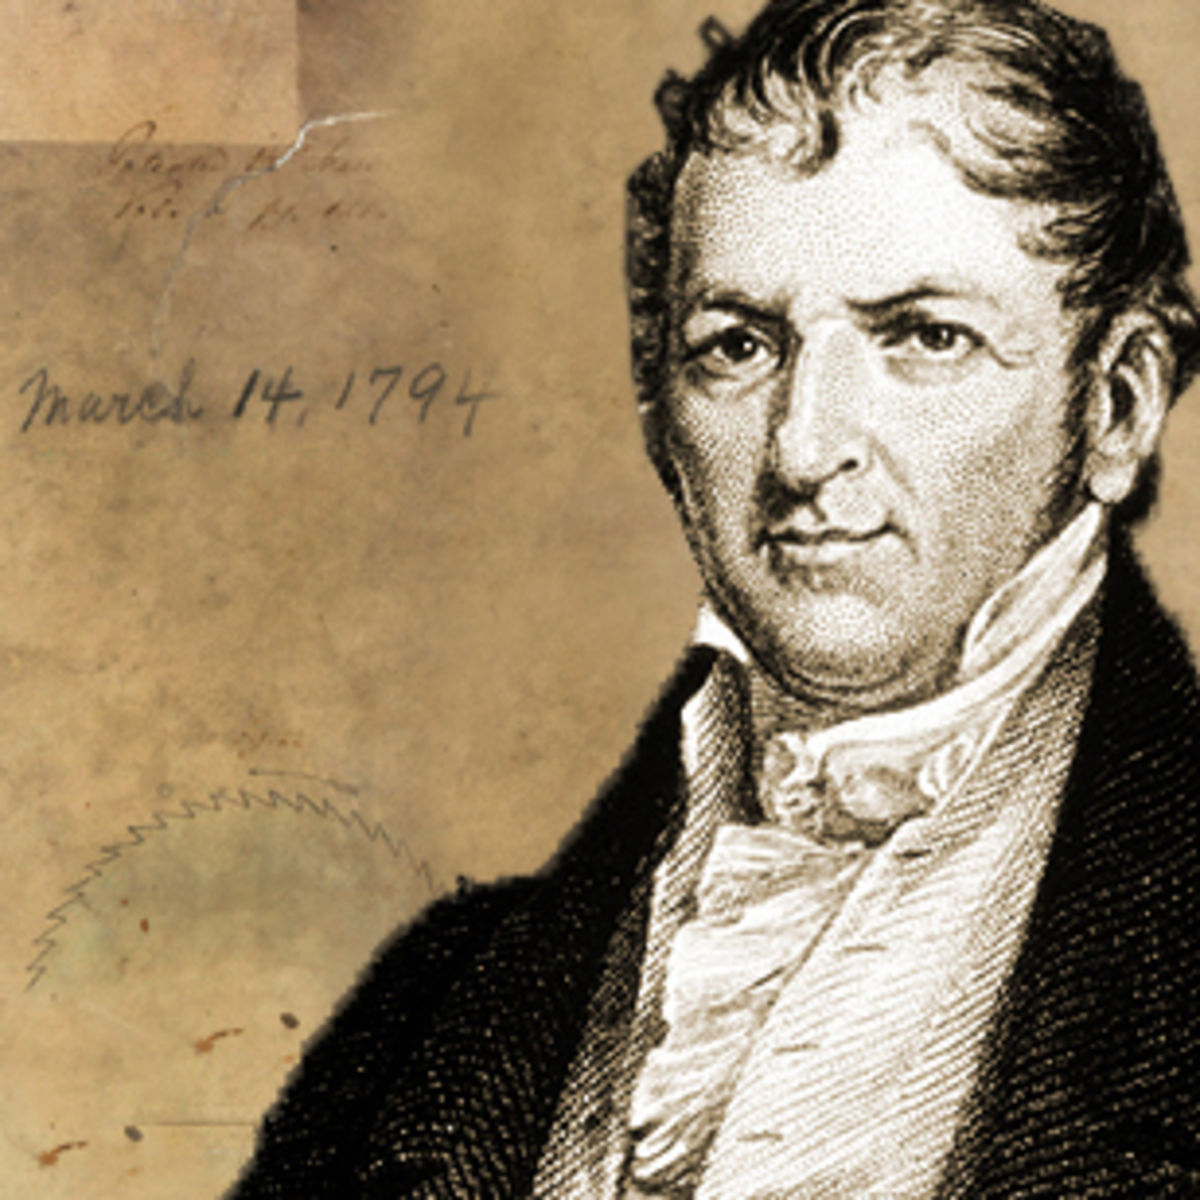 eli whitney 3 reviews of eli whitney museum i could write volumes about this museum but will not bore you with it all i will say that i took classes with the now director, bill brown - years before he took over ewm and built it into a successful hands on.